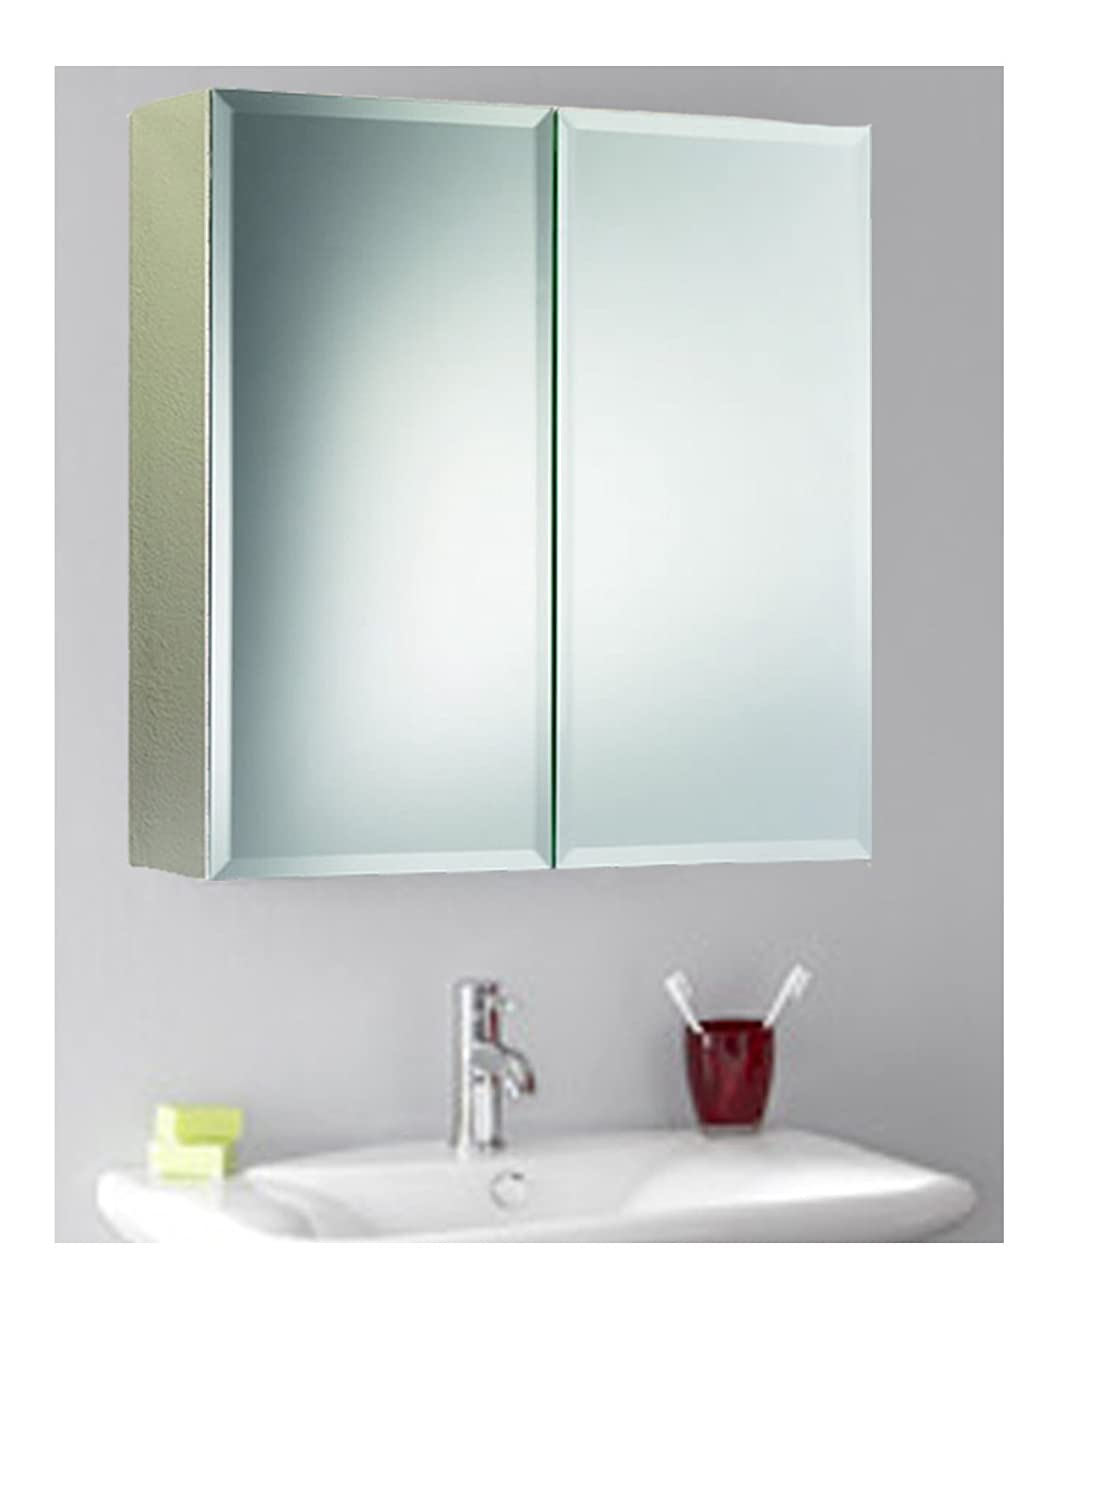 Wilko Bathroom Cabinet Stylish Double Door S S Wall Mirror Storage Bathroom Cabinet With